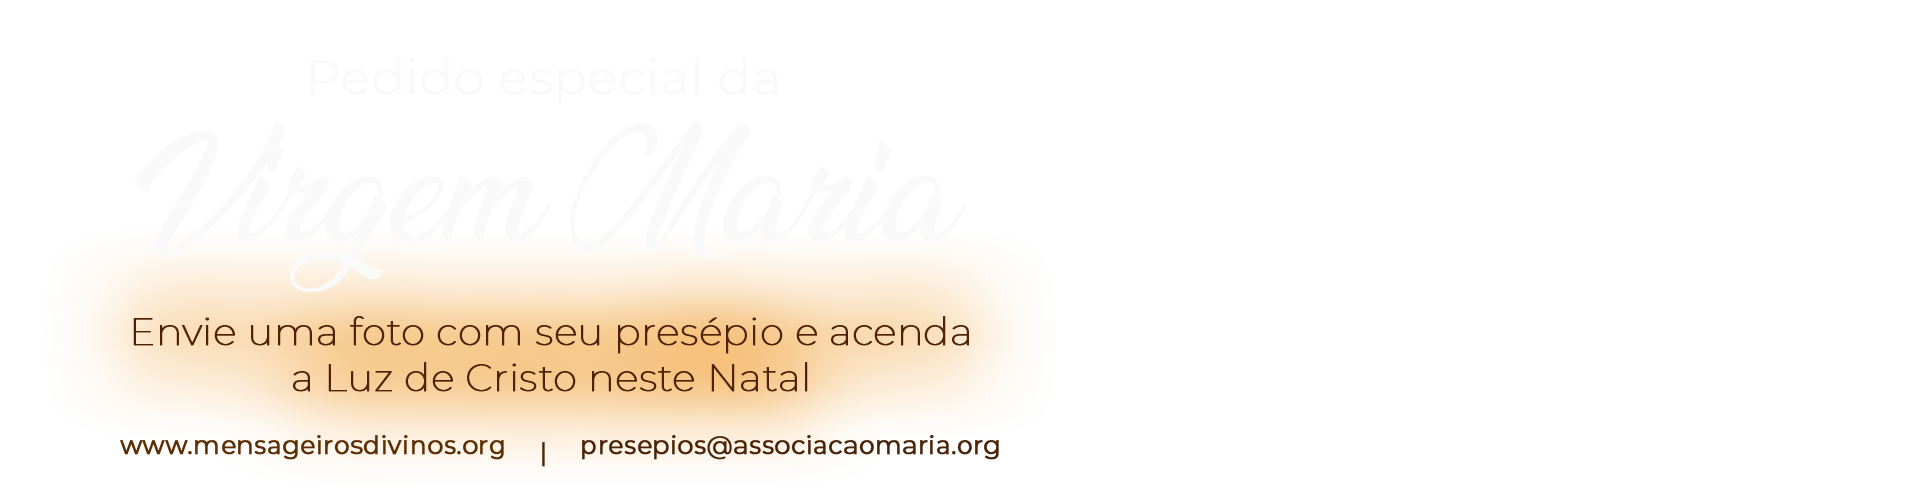 banner_texto_port.png